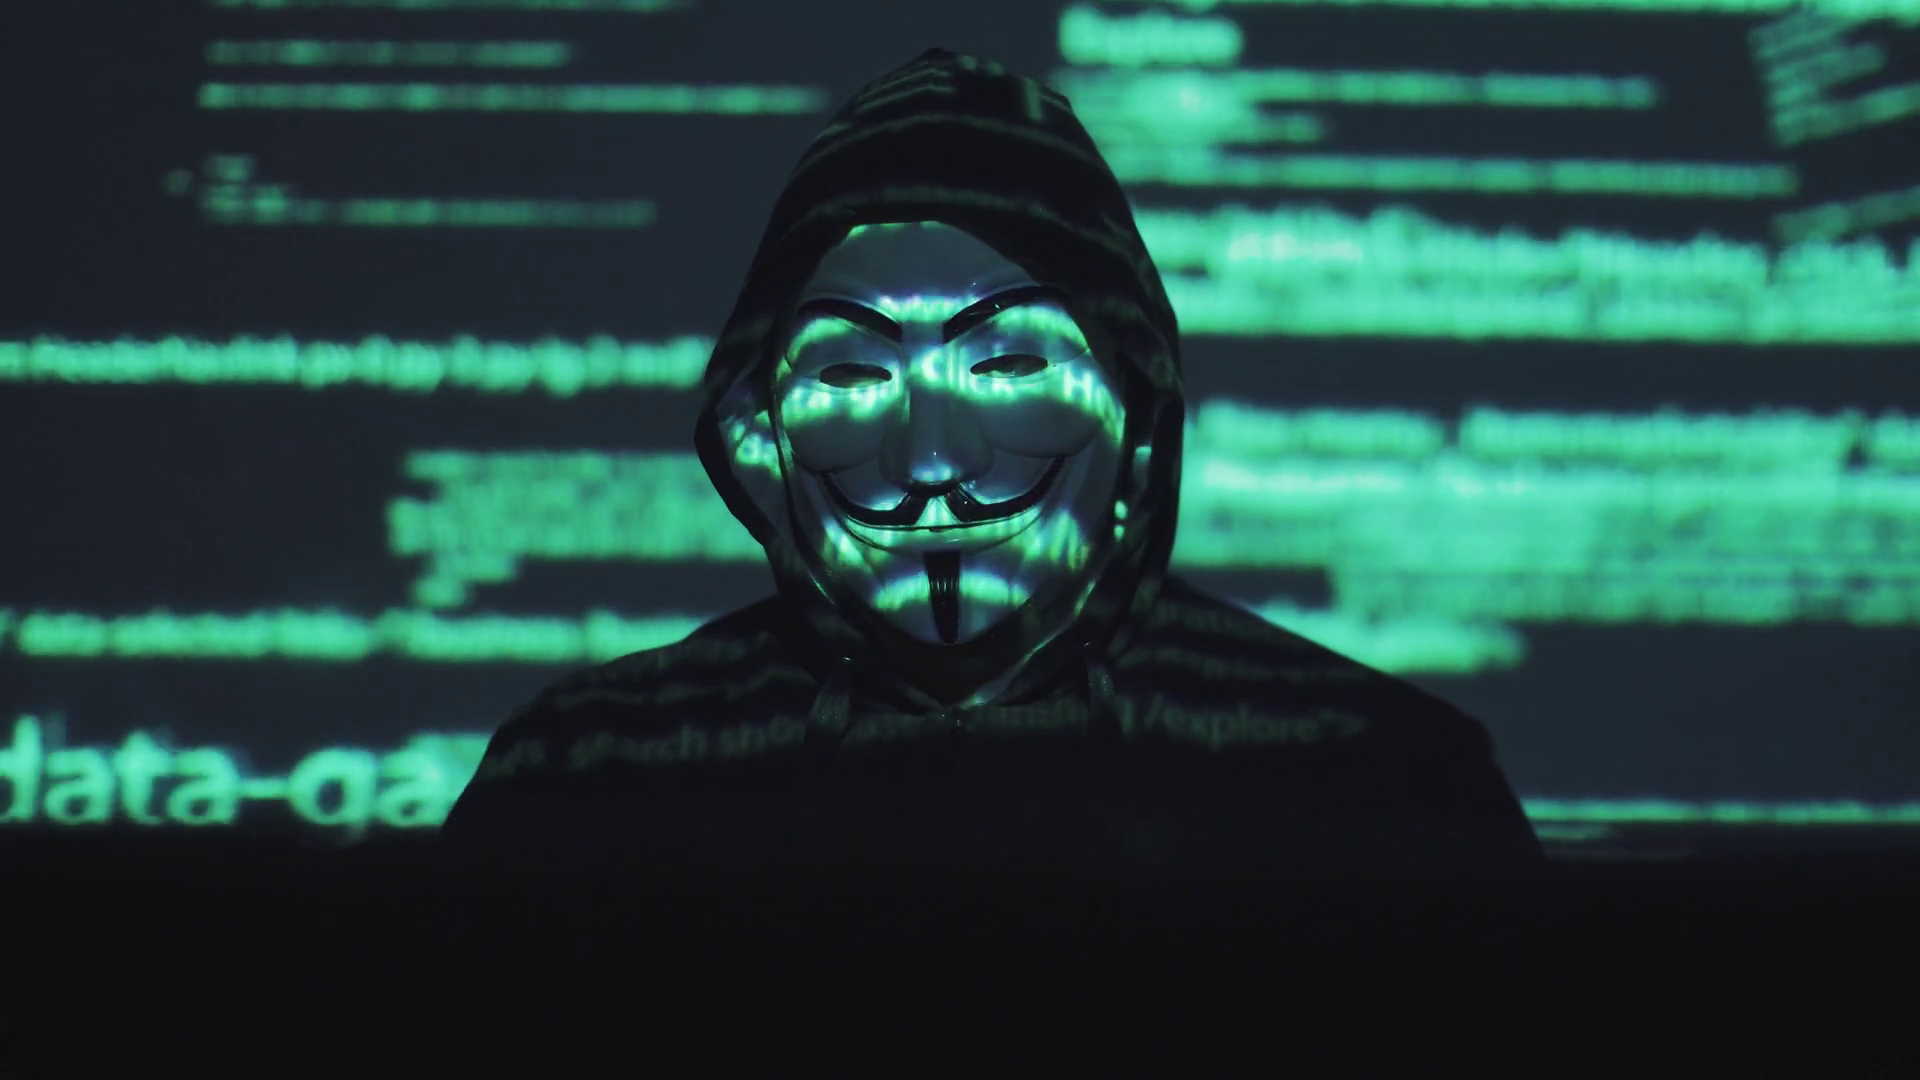 Anonymous In The Mask Steals User Data On The Network Hacker Against The Background Of Running Code Stock Video Footage Storyblocks